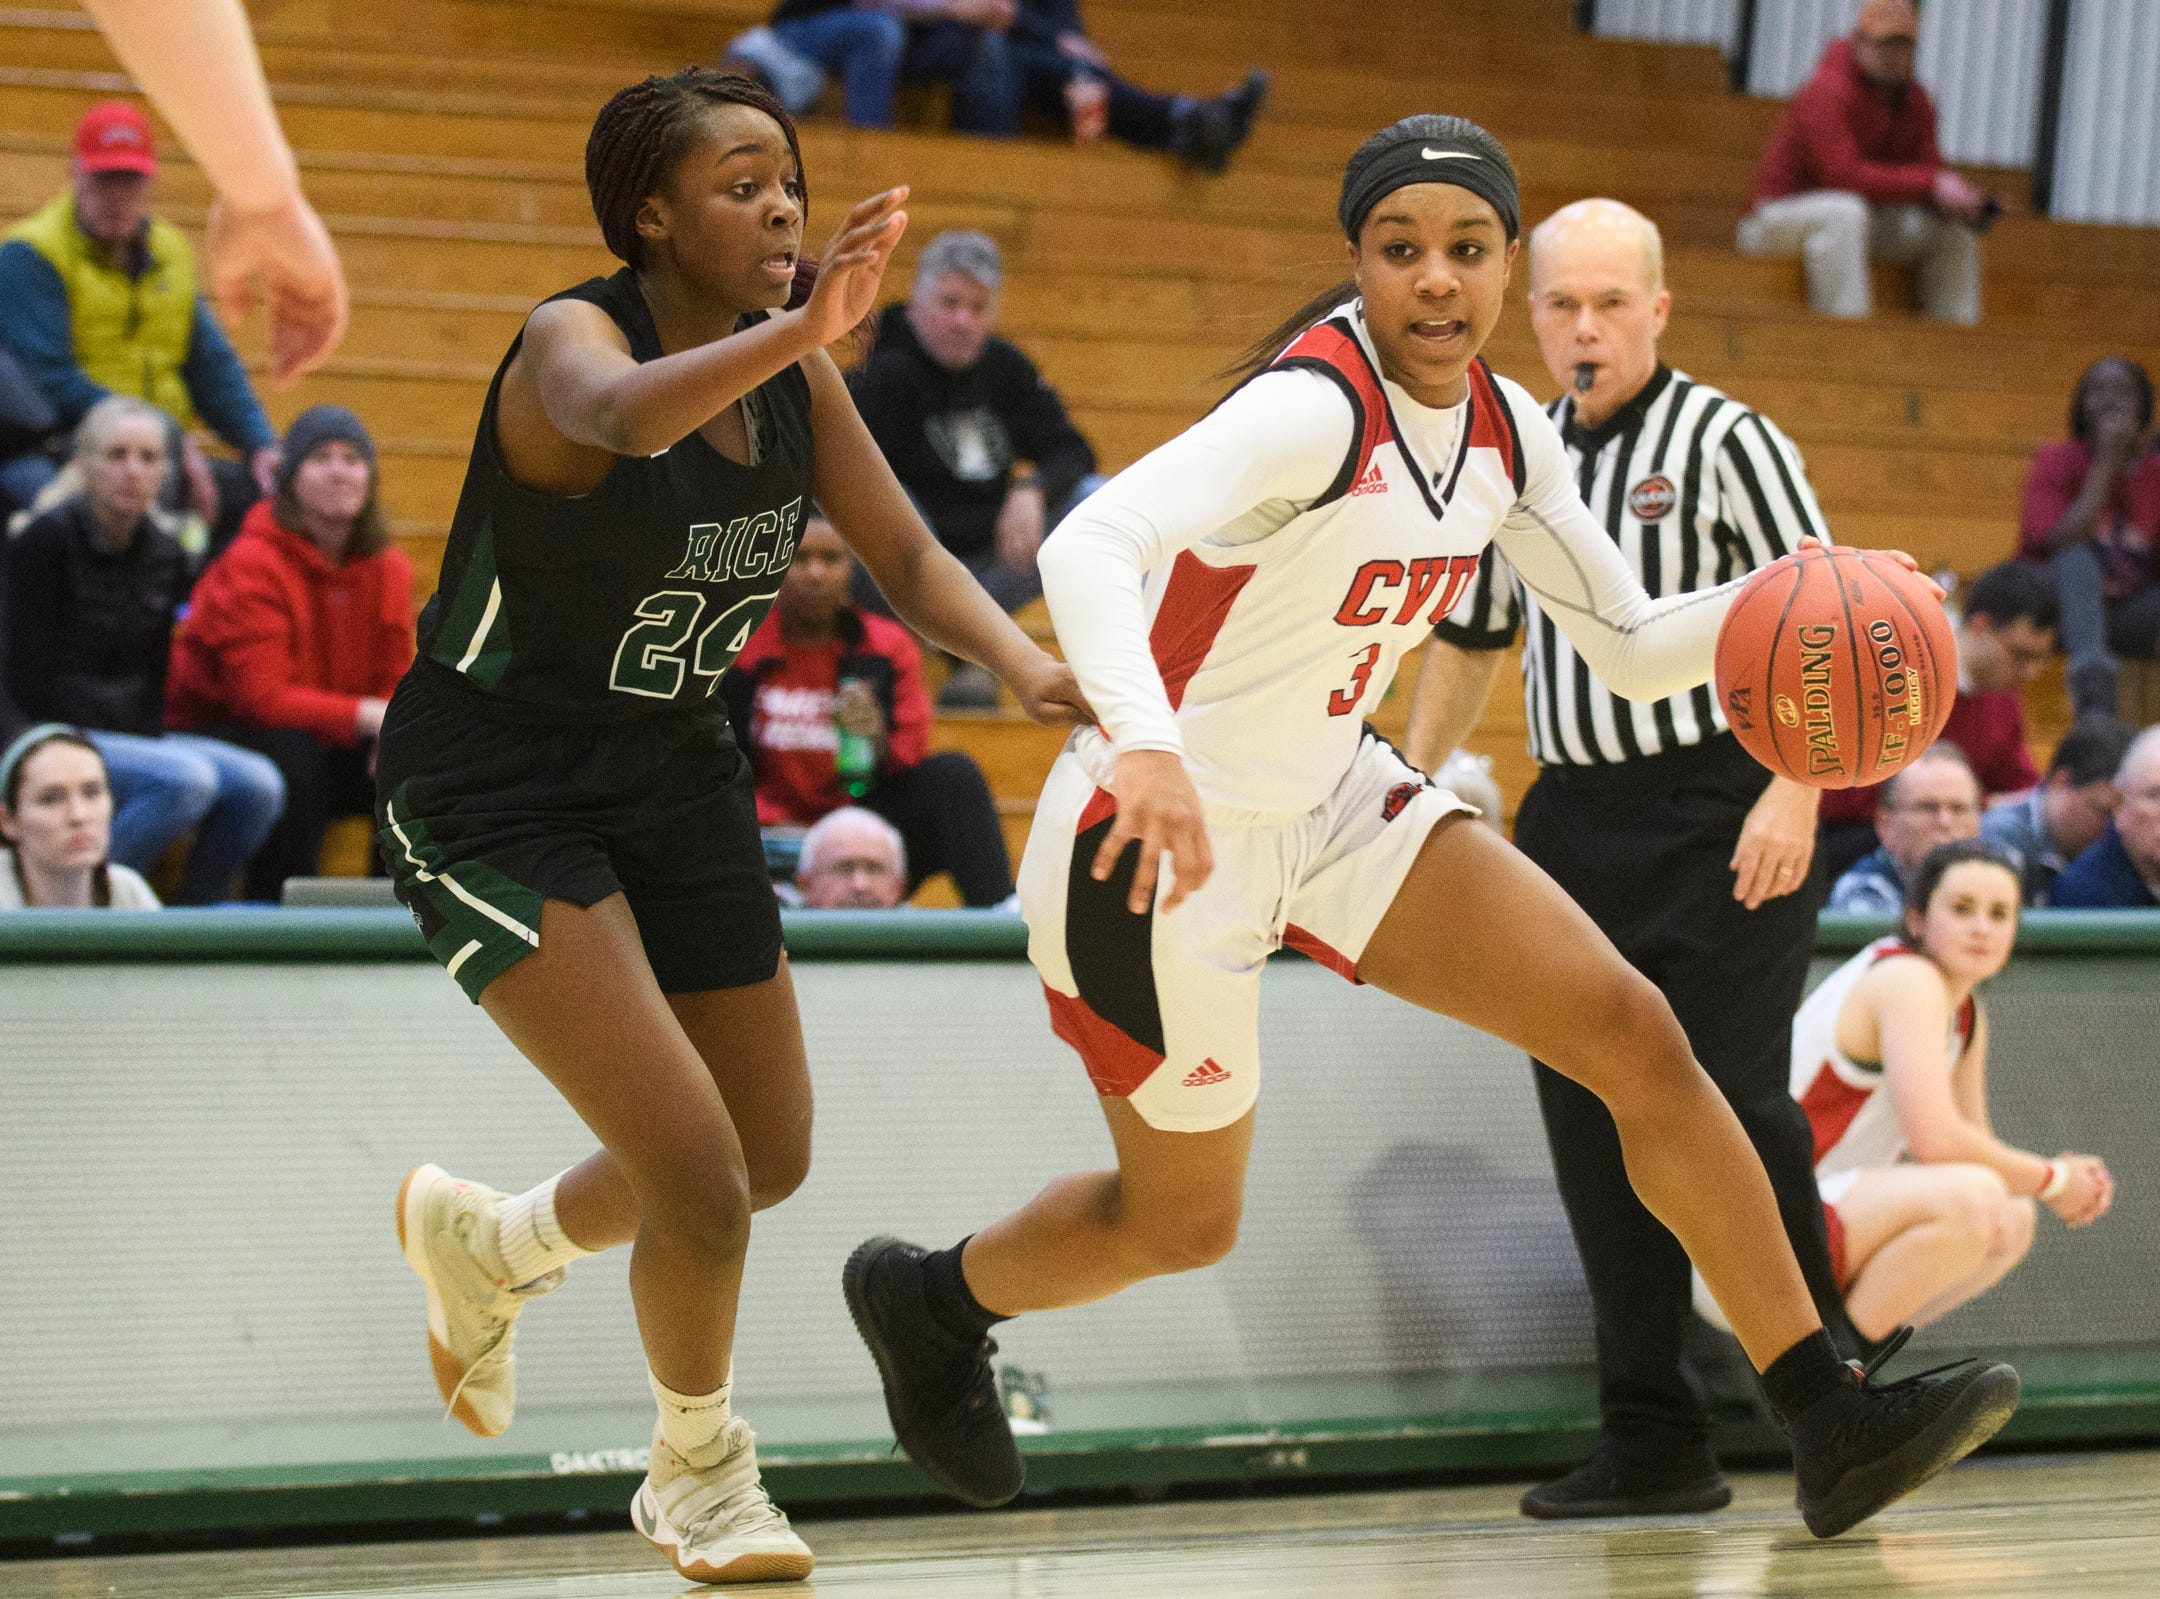 CVU's Mekkena Boyd (3) drives to the hoop past Rice's Khadija Hussein (24) during the girls semifinal basketball game between the Rice Green Knights and the Champlain Valley Union Redhawks at Patrick Gym on Wednesday nigh March 6, 2019 in Burlington, Vermont.